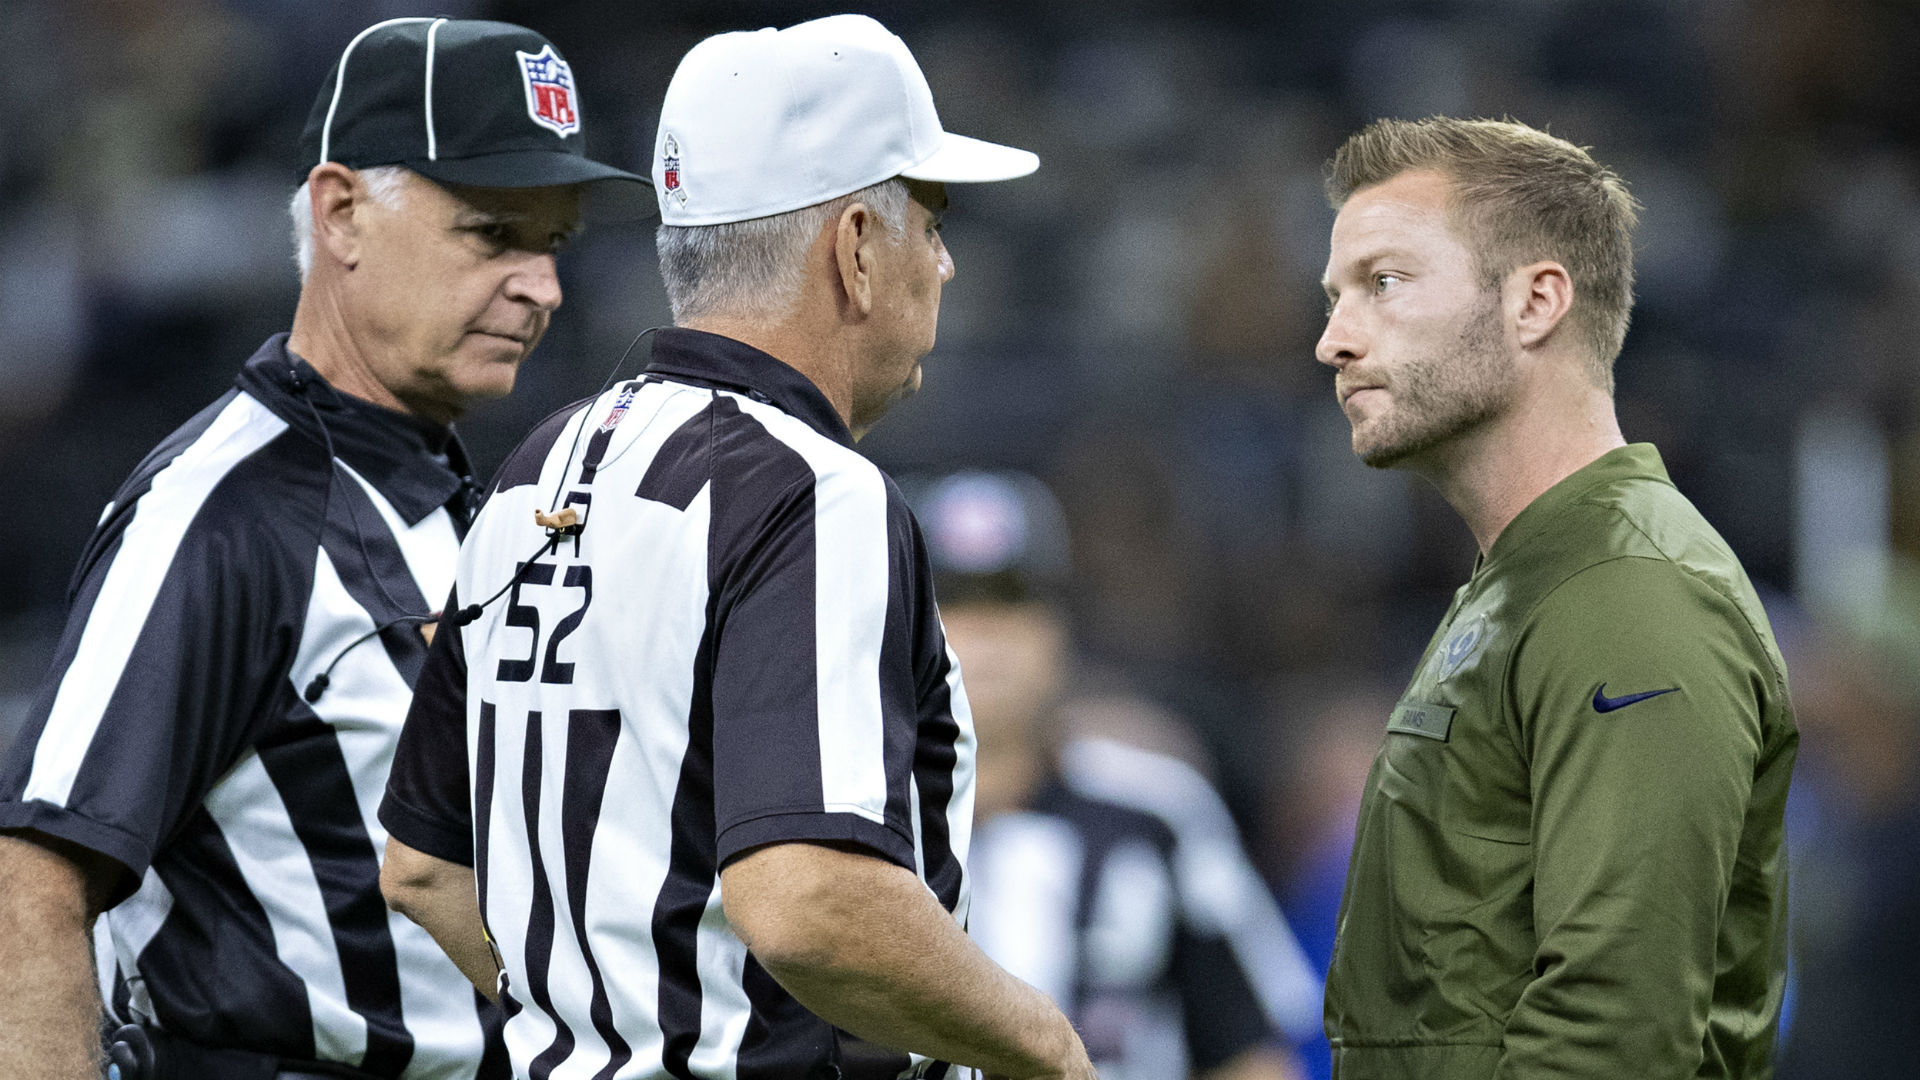 a4ccfeea5a263b Rams fans petition to remove ref from NFC championship | Sporting News